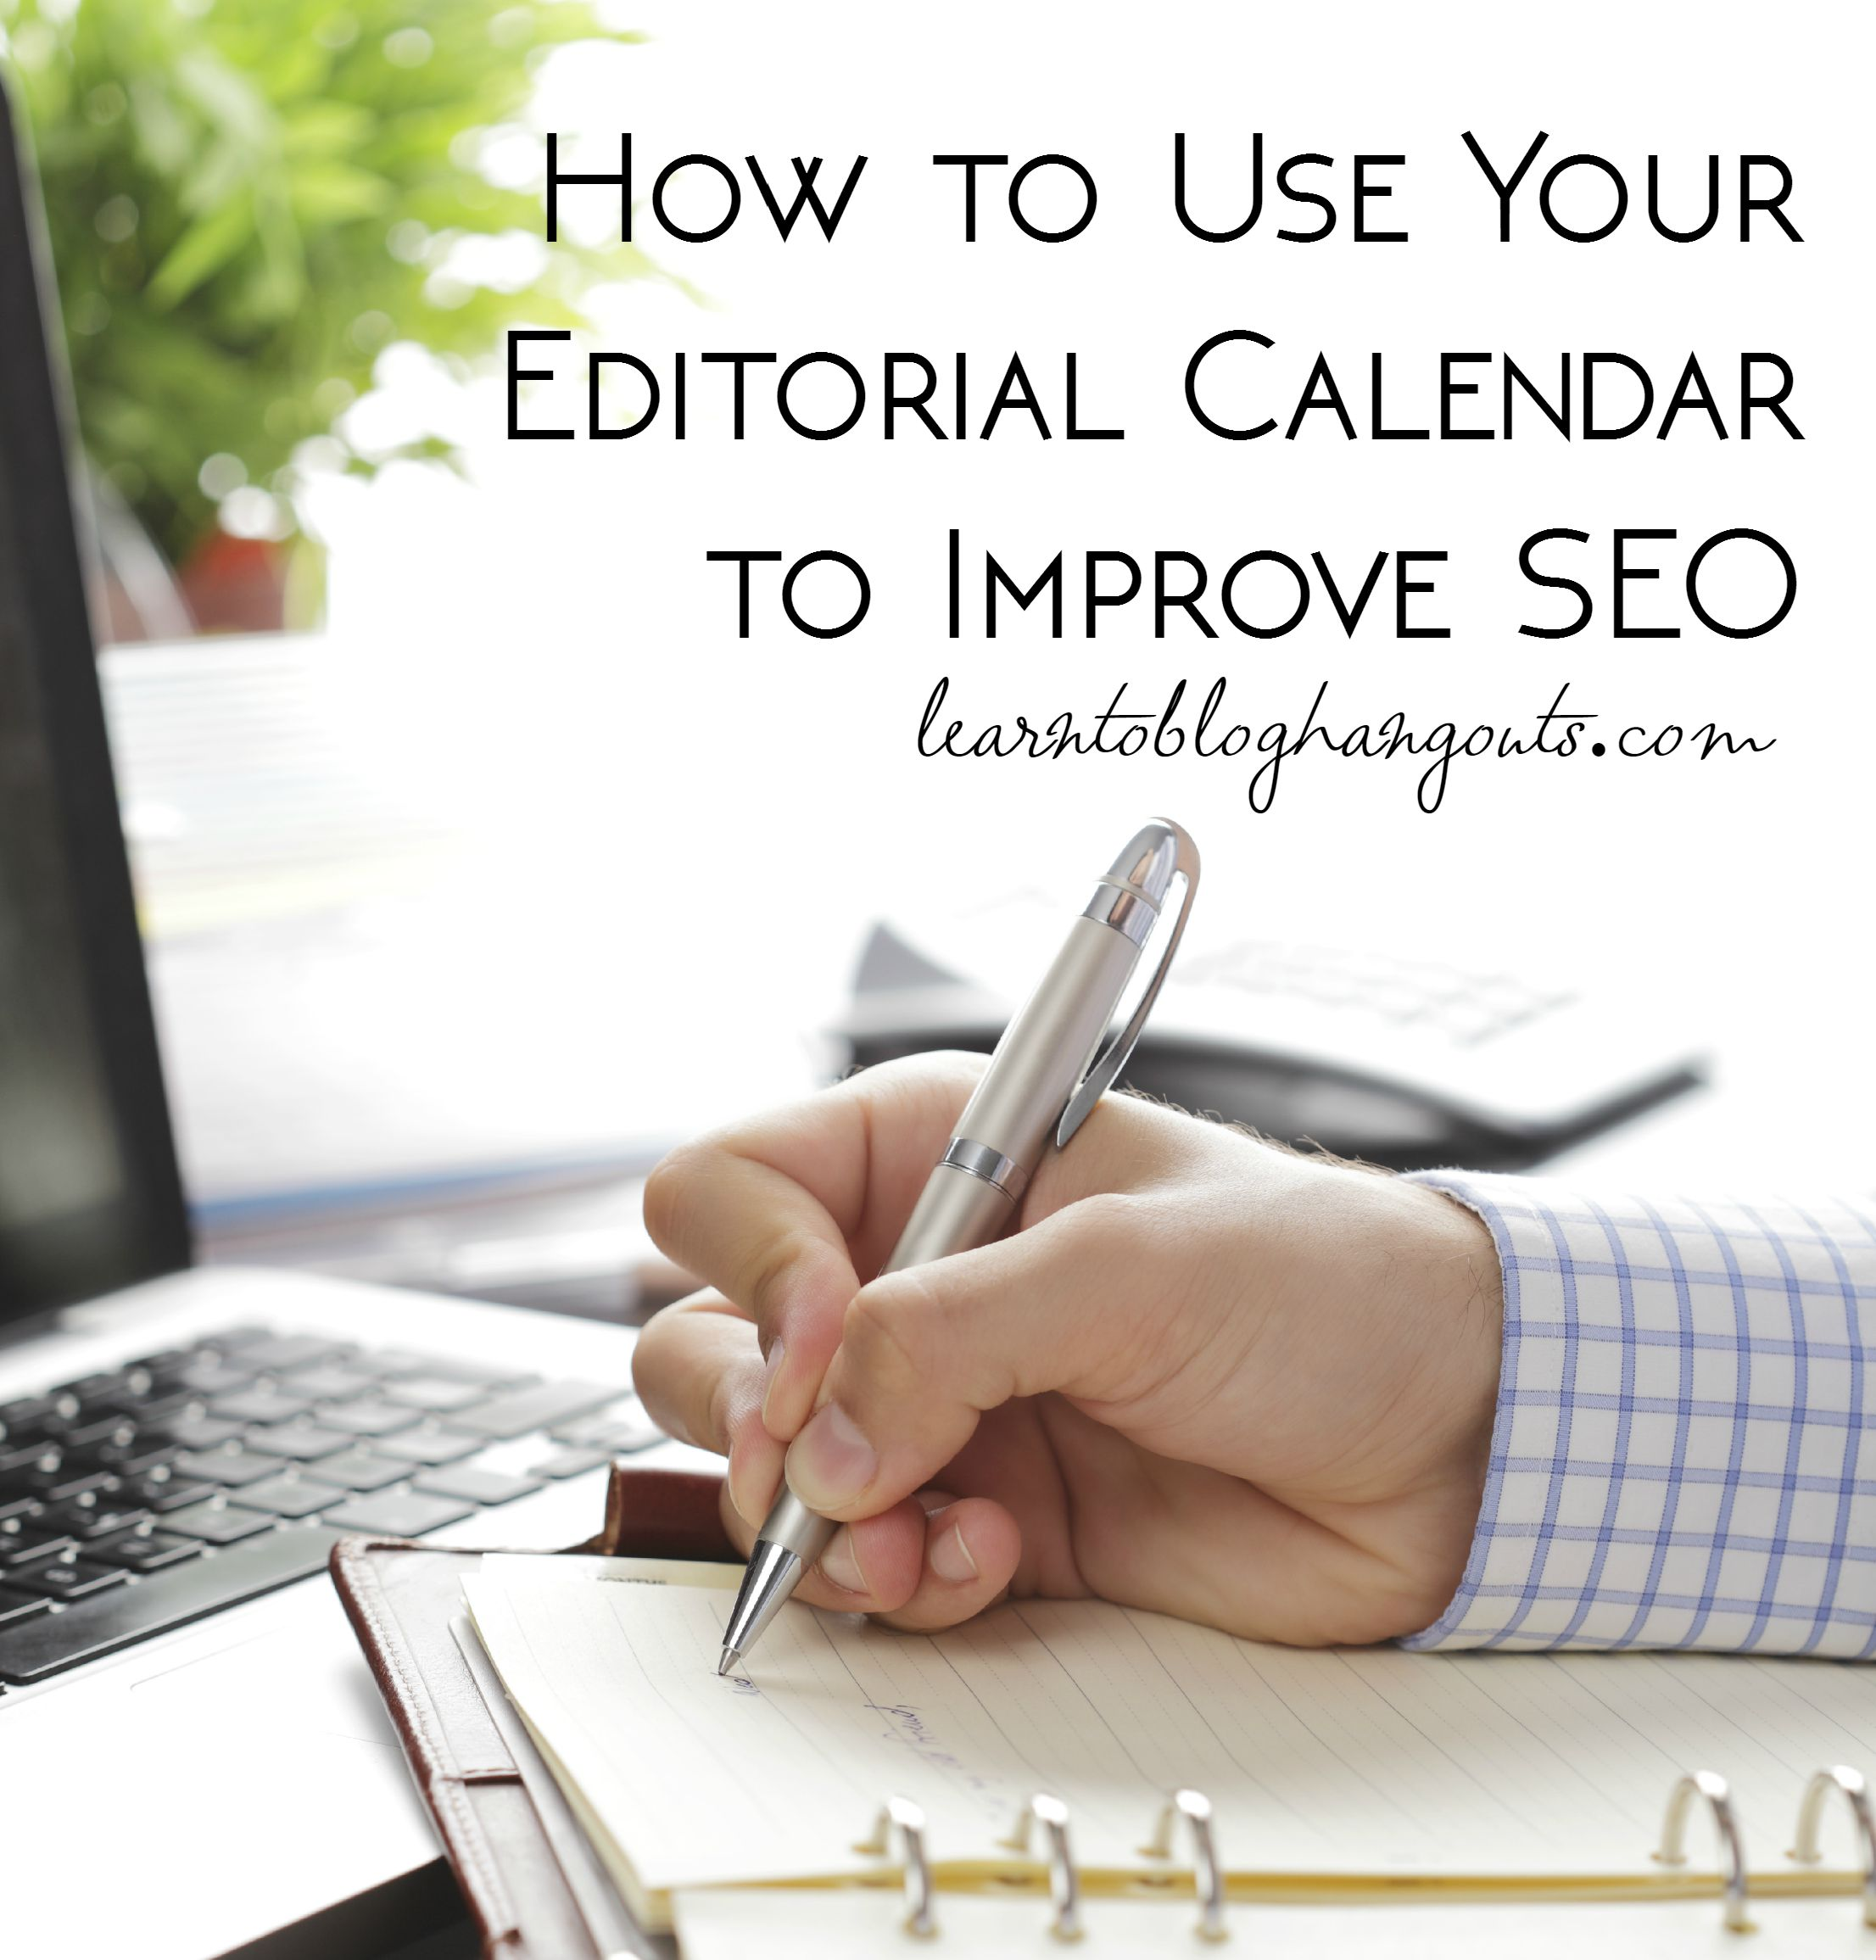 How to Use Your Editorial (Content) Calendar to Improve SEO